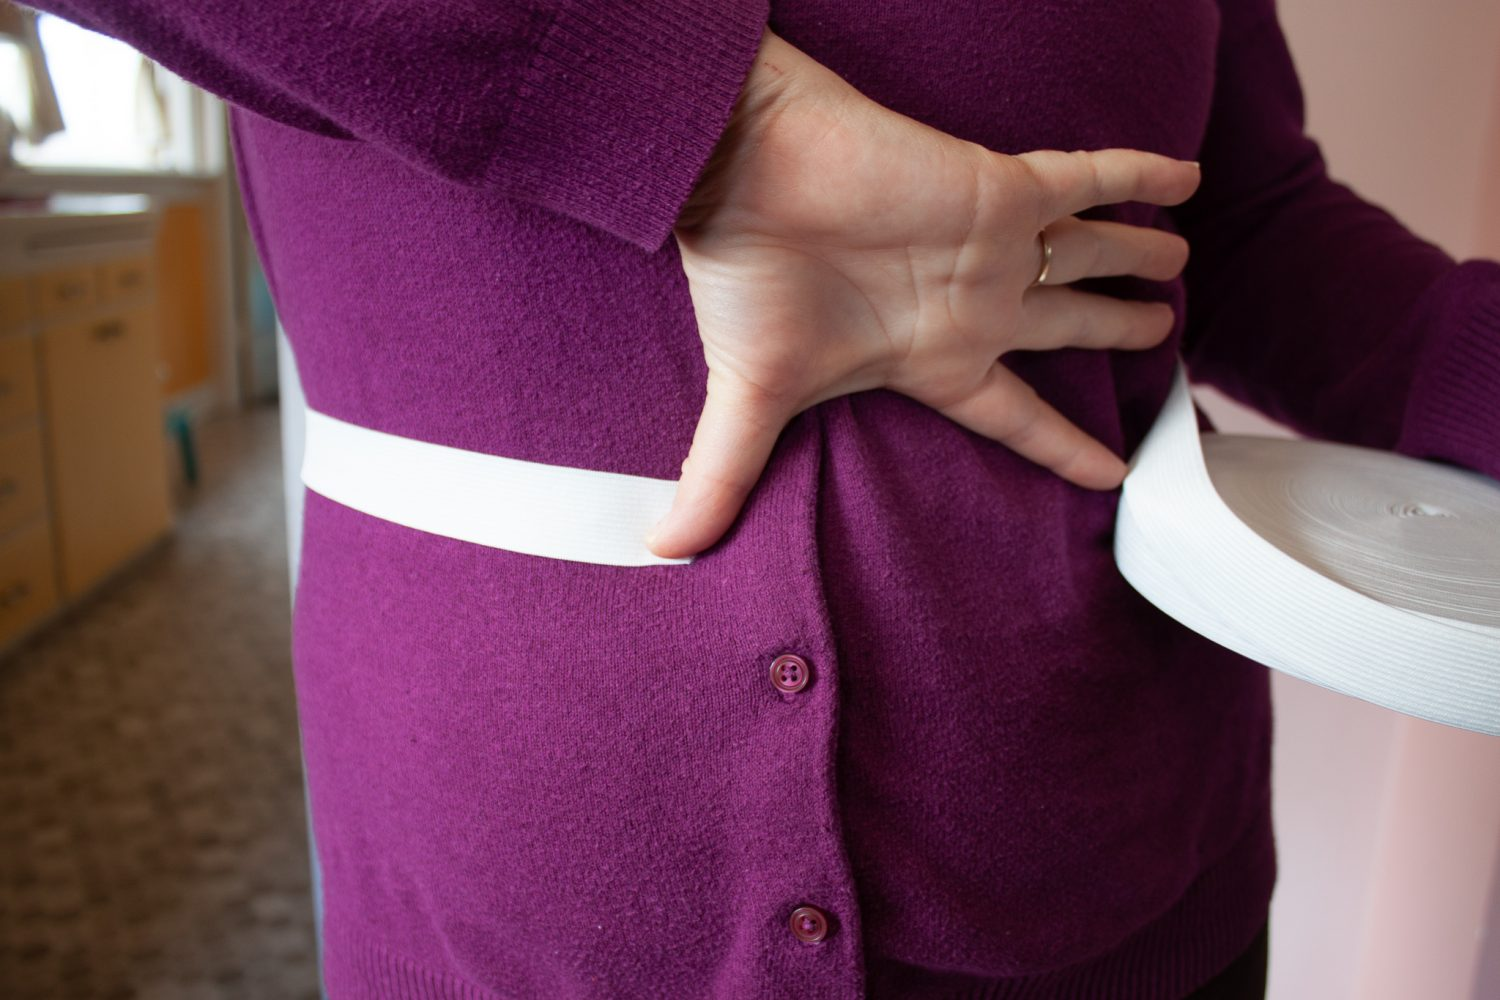 Elastic wrapped around waist with outstretched hand measuring gap